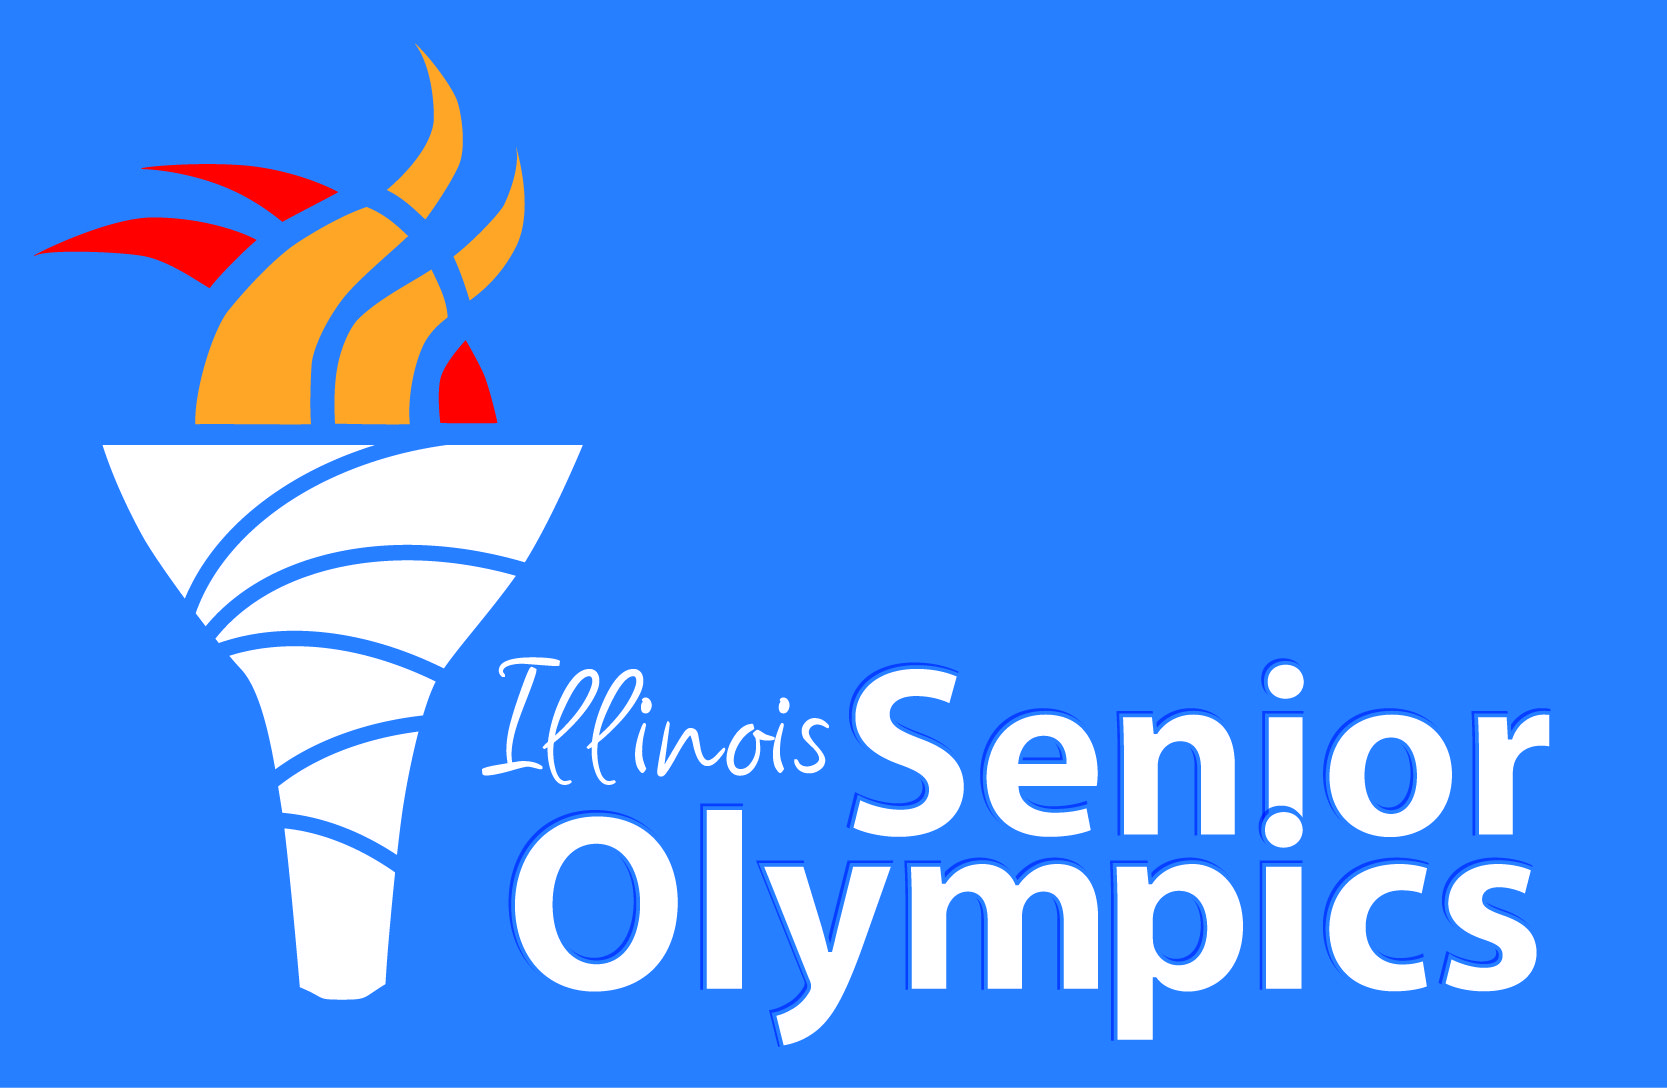 Illinois Senior Olympics